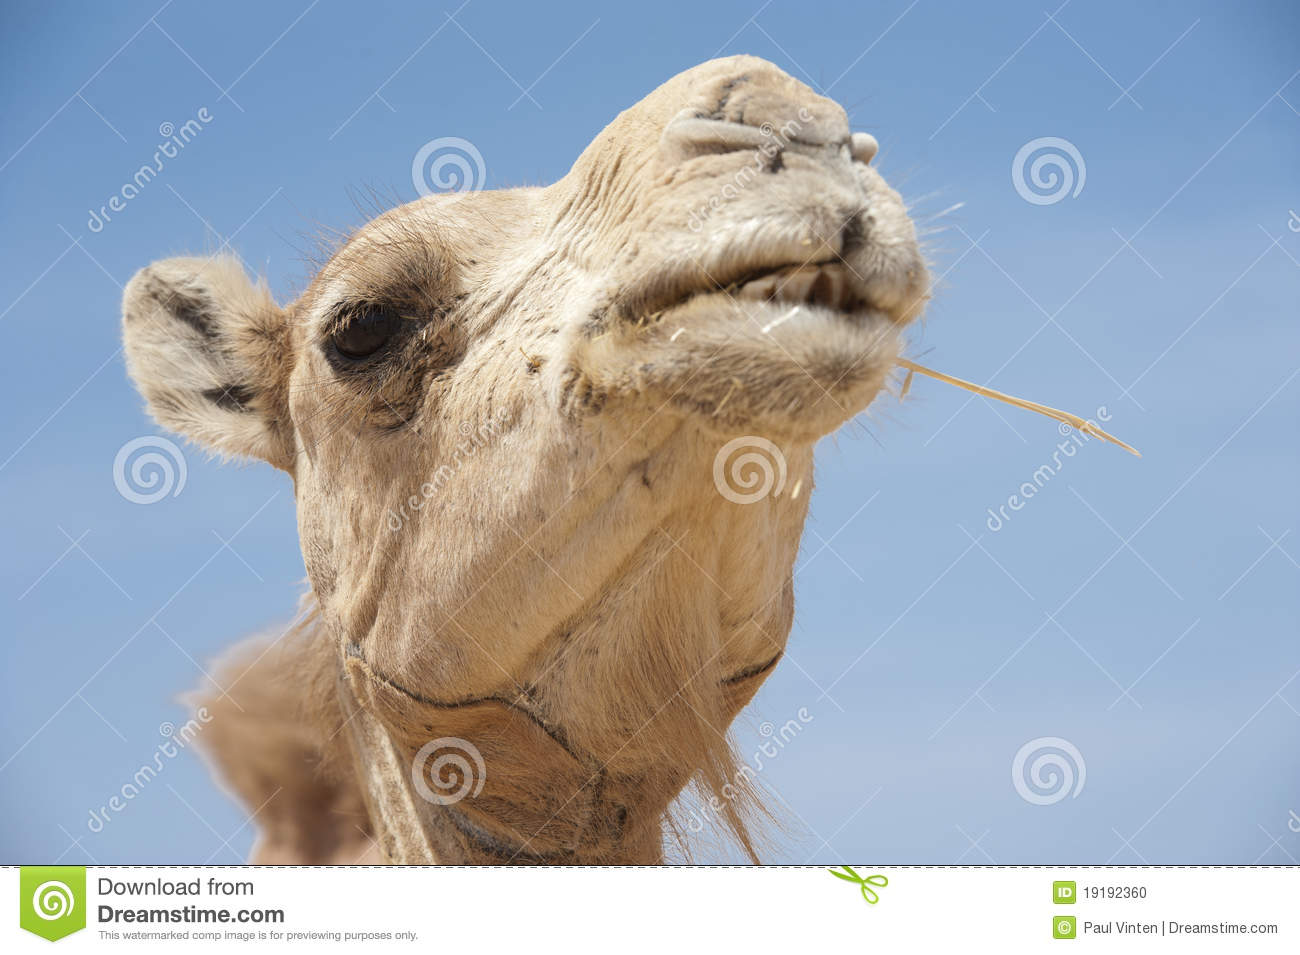 Download Head of a dromedary camel stock photo. Image of detail - 19192360